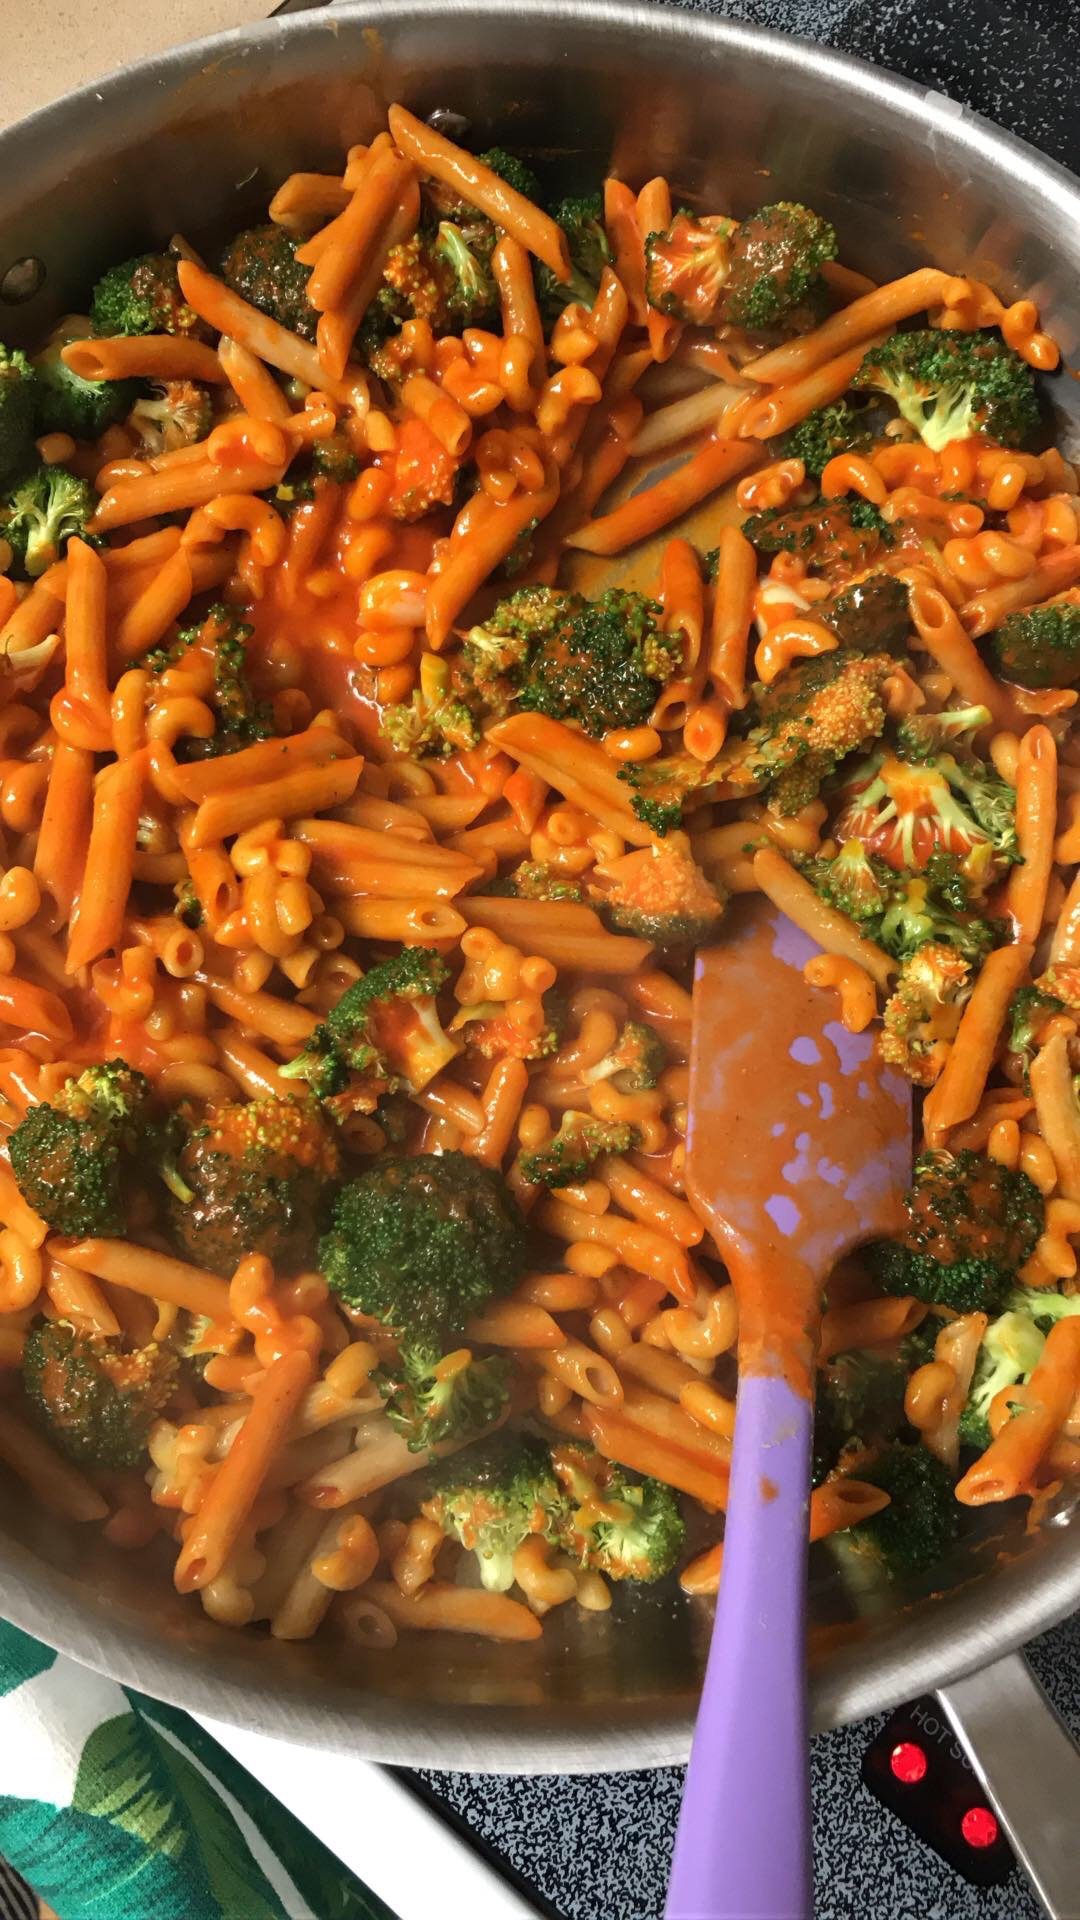 Green Lentil Pasta with Roasted Red Pepper and Broccoli - Meal Planning + What We Ate Last Week - Communikait by Kait Hanson